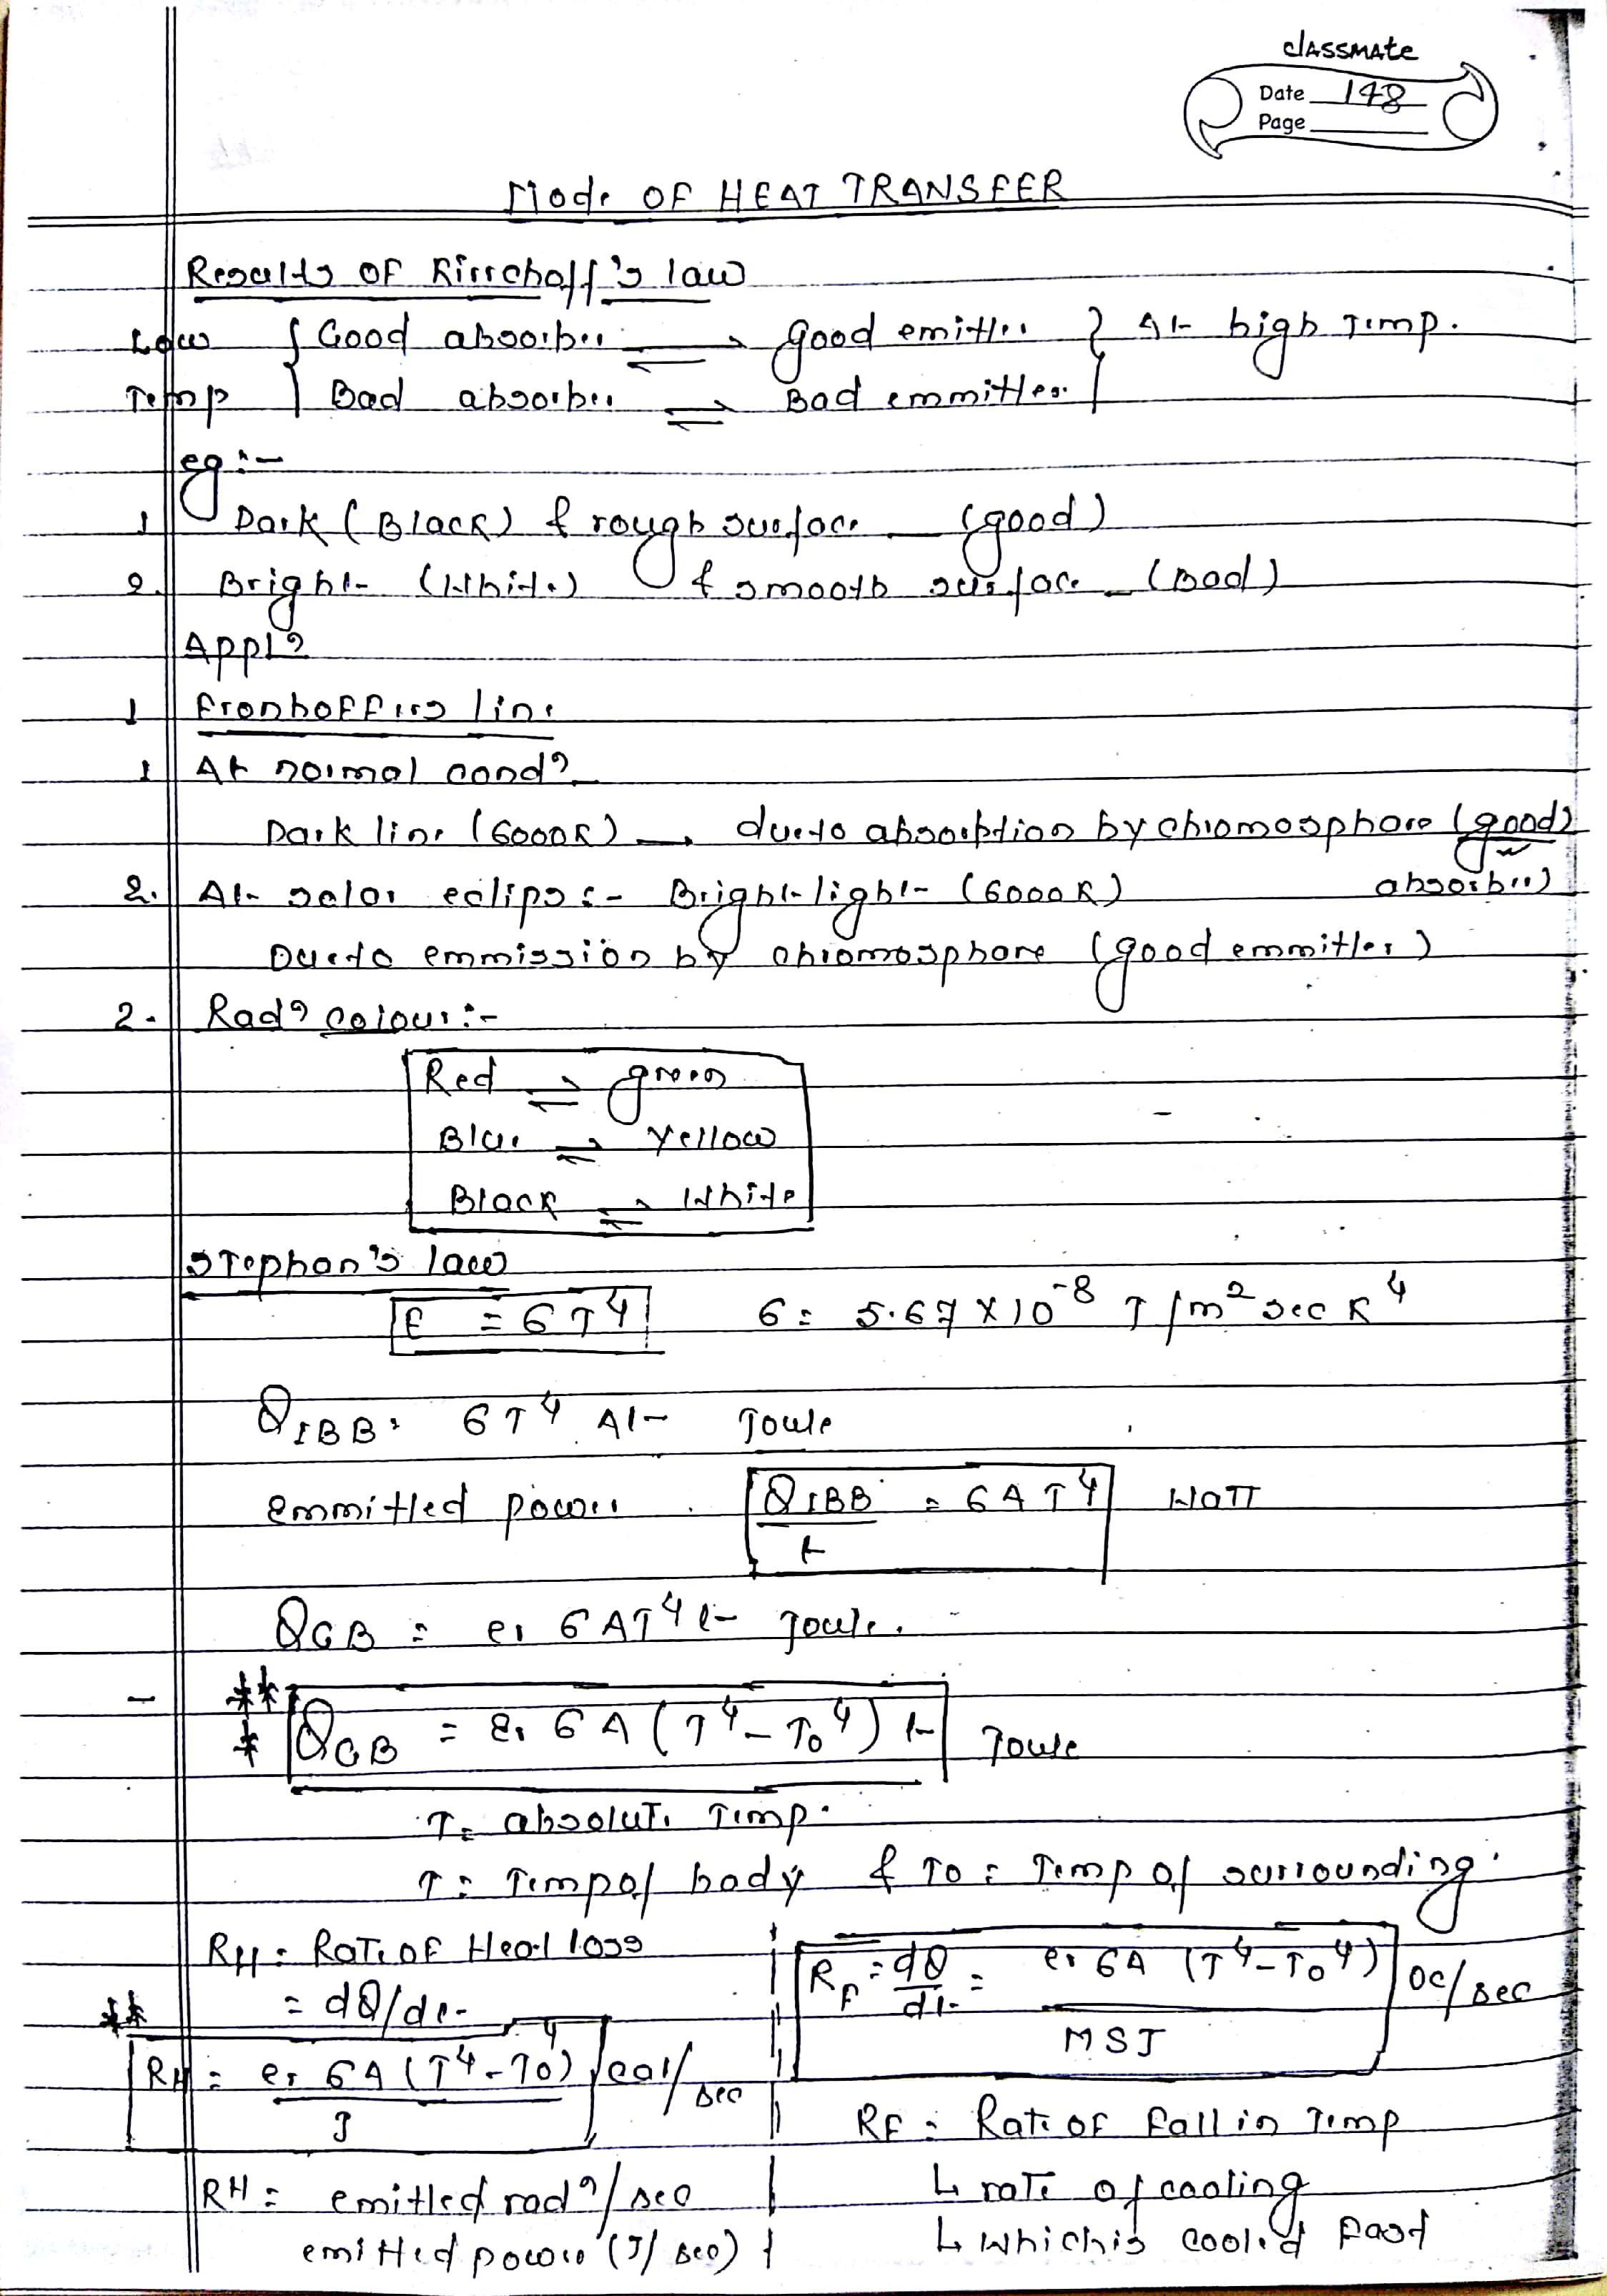 Mode of Heat Transfer_1